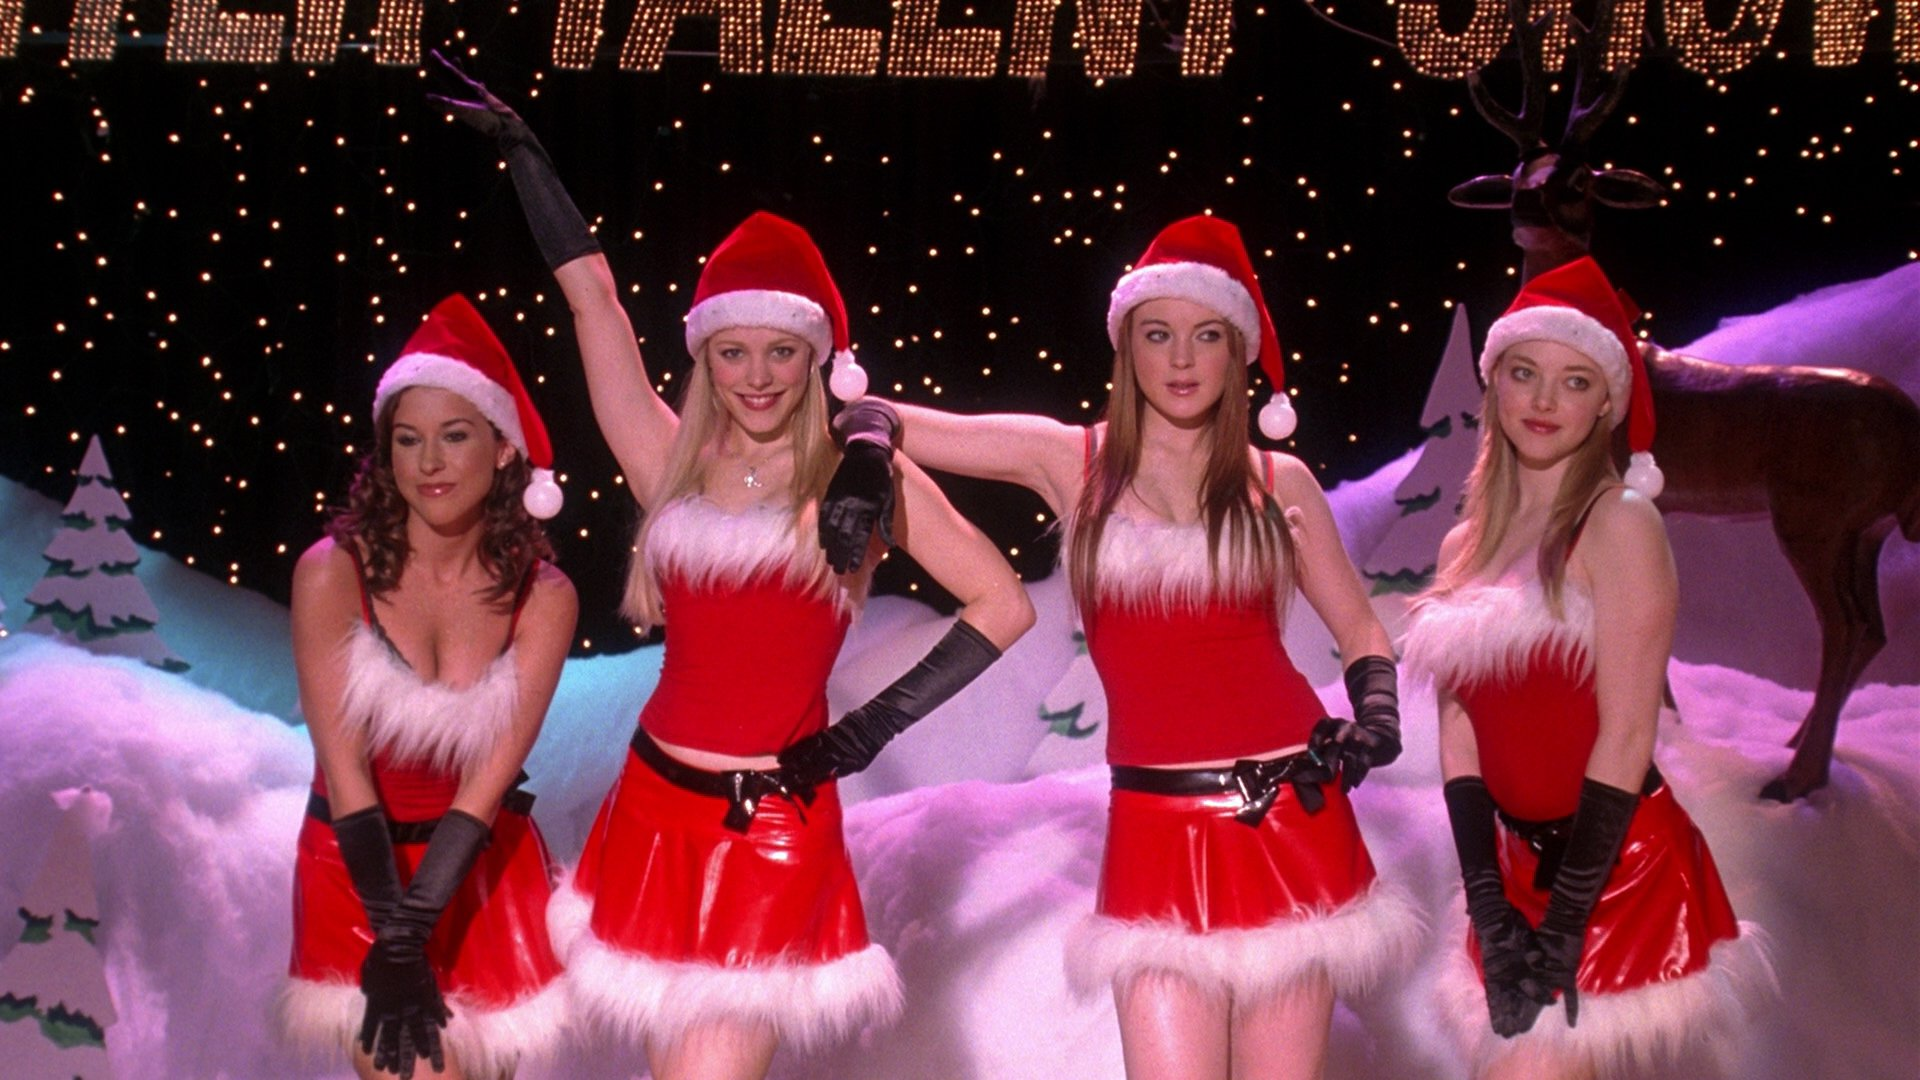 mean-girls-gif-jingle-bell-rock-i5